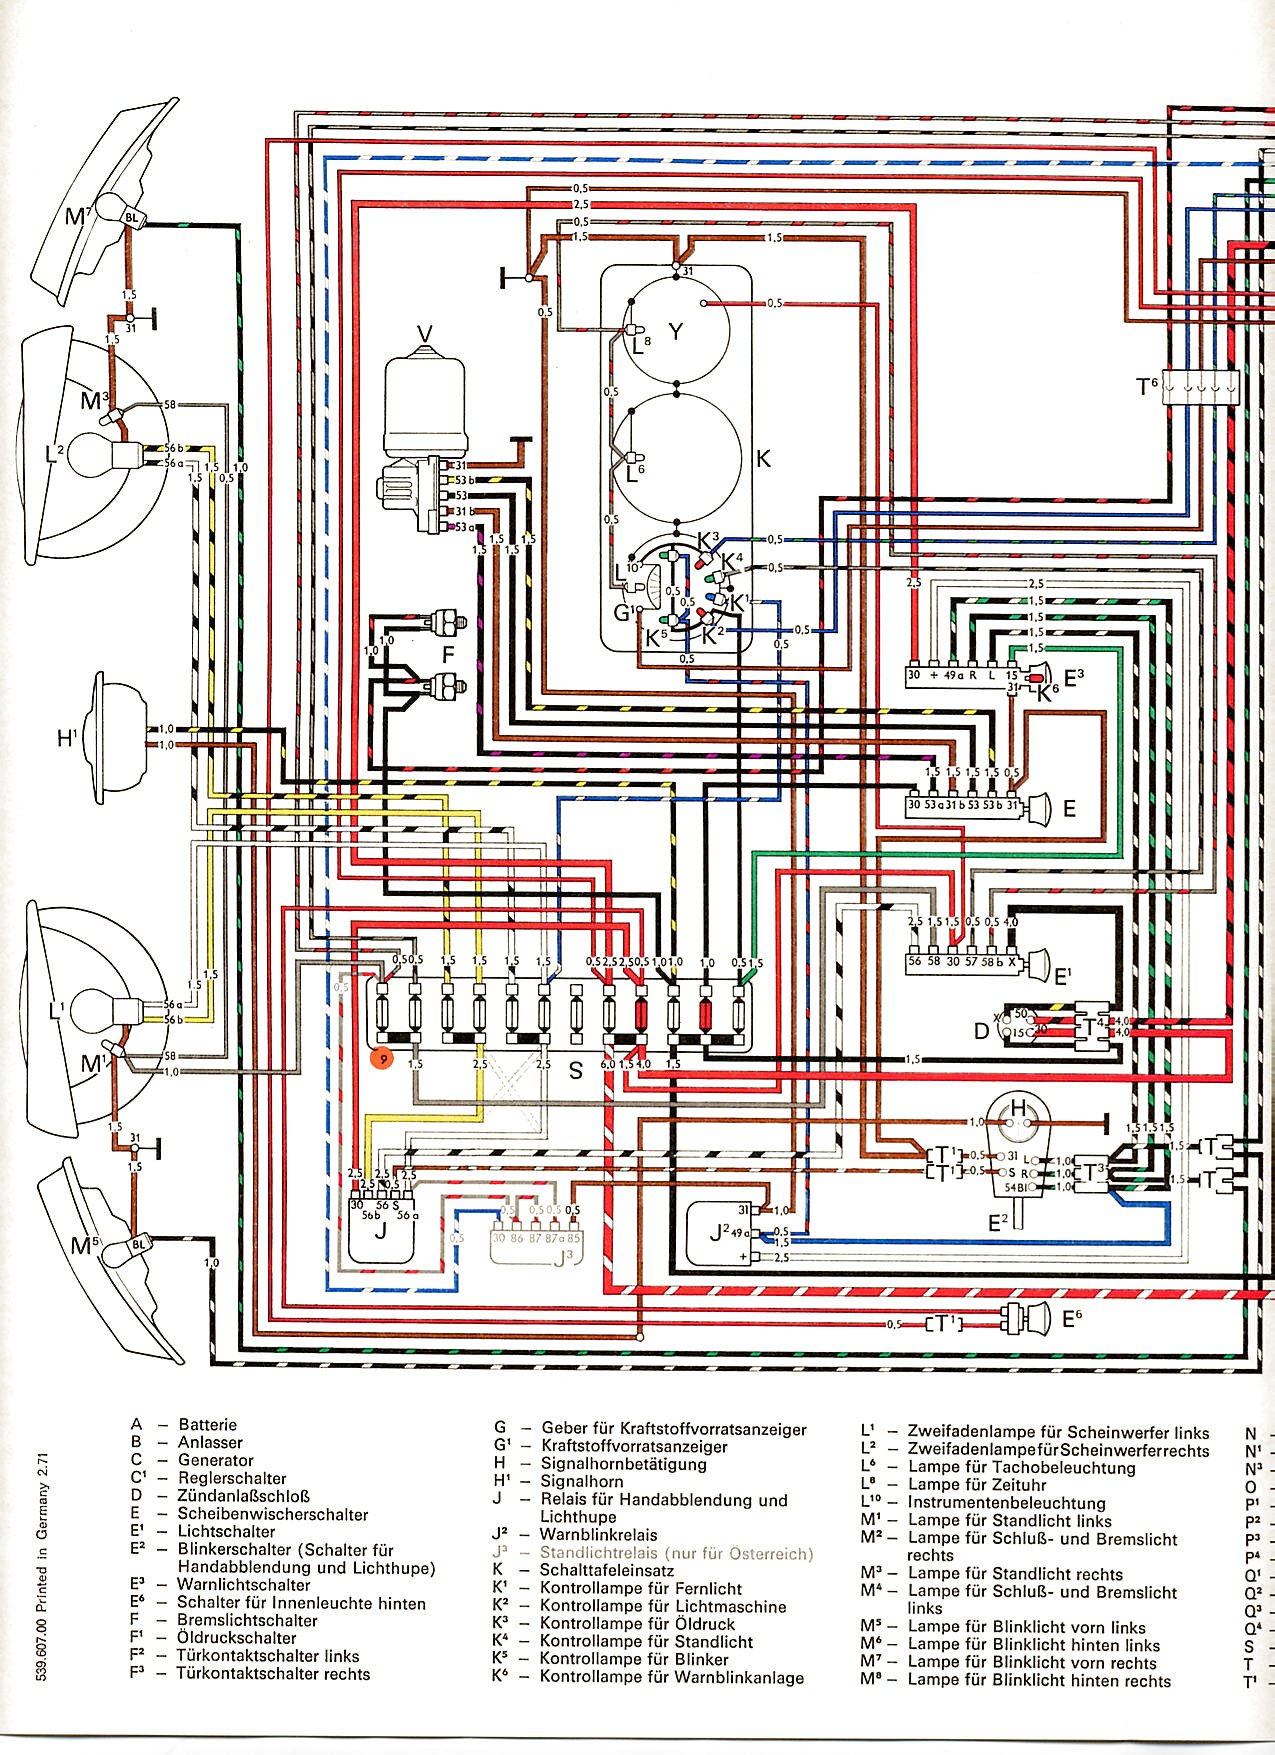 wiring diagram for vw t4 simple wiring diagram Volkswagen Engine Diagram vw t4 wiring diagram wiring diagram alfa romeo wiring diagrams vintagebus com vw bus (and